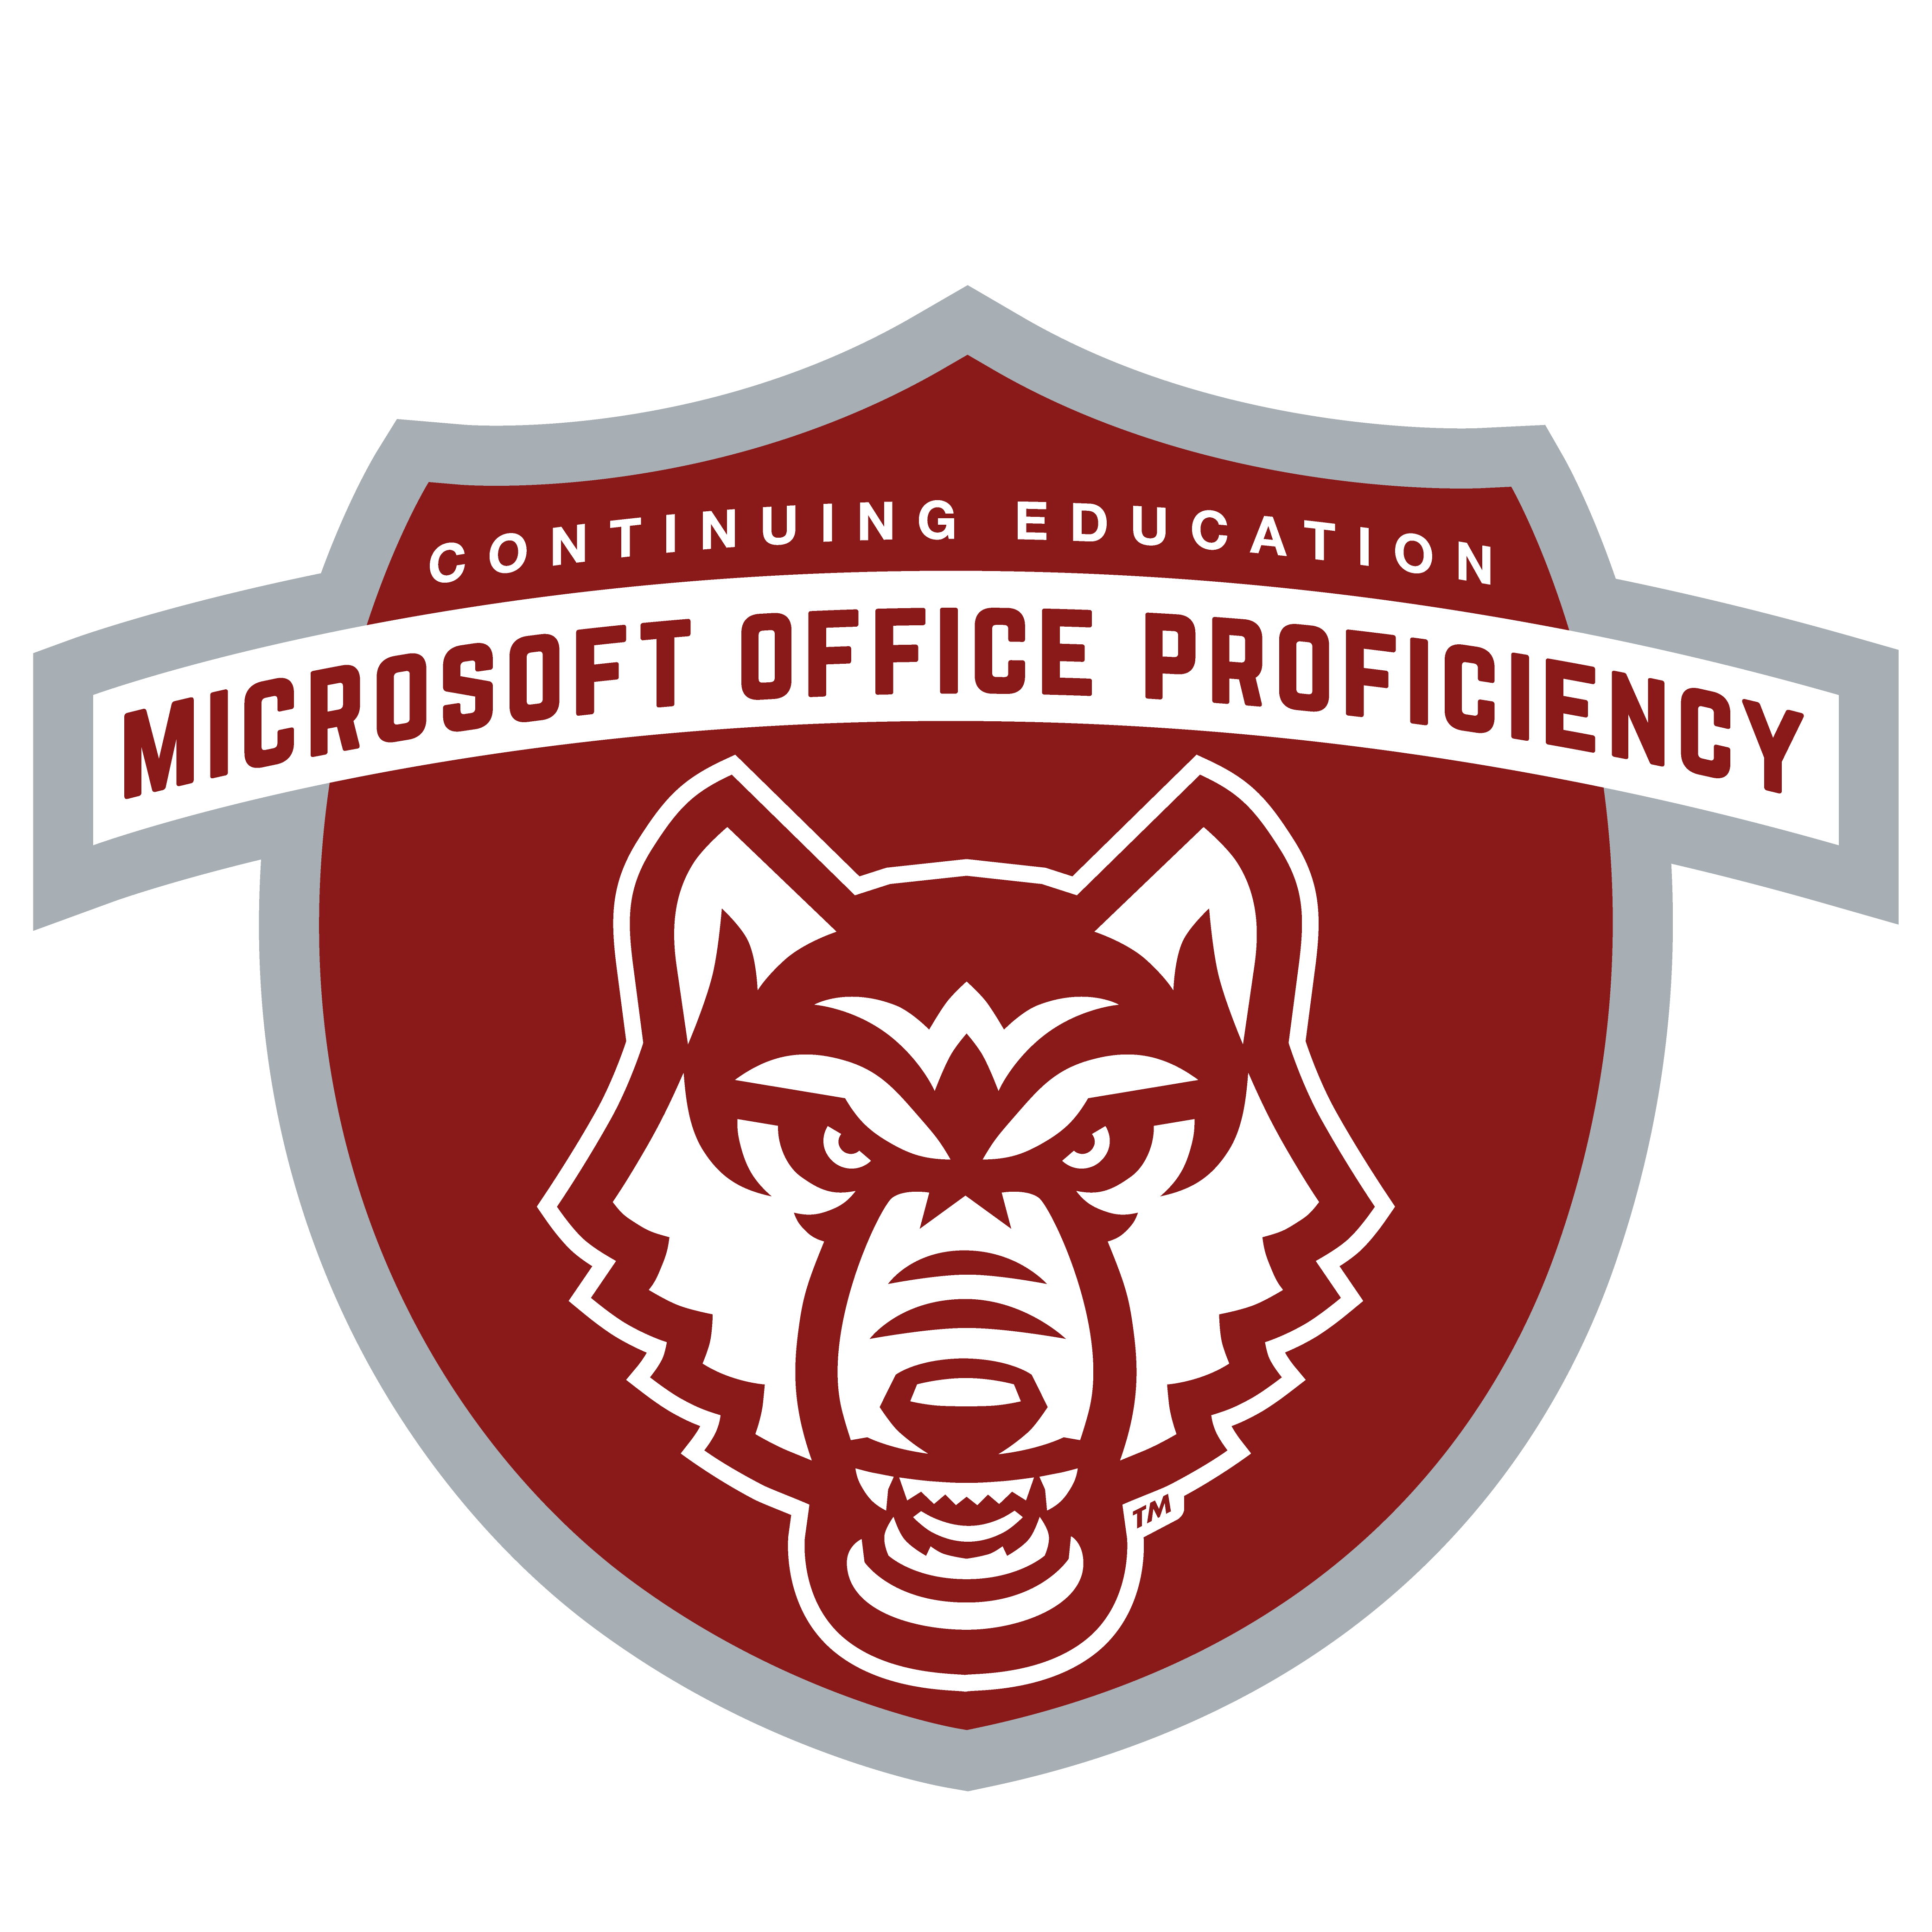 Microsoft Office Proficiency Badge